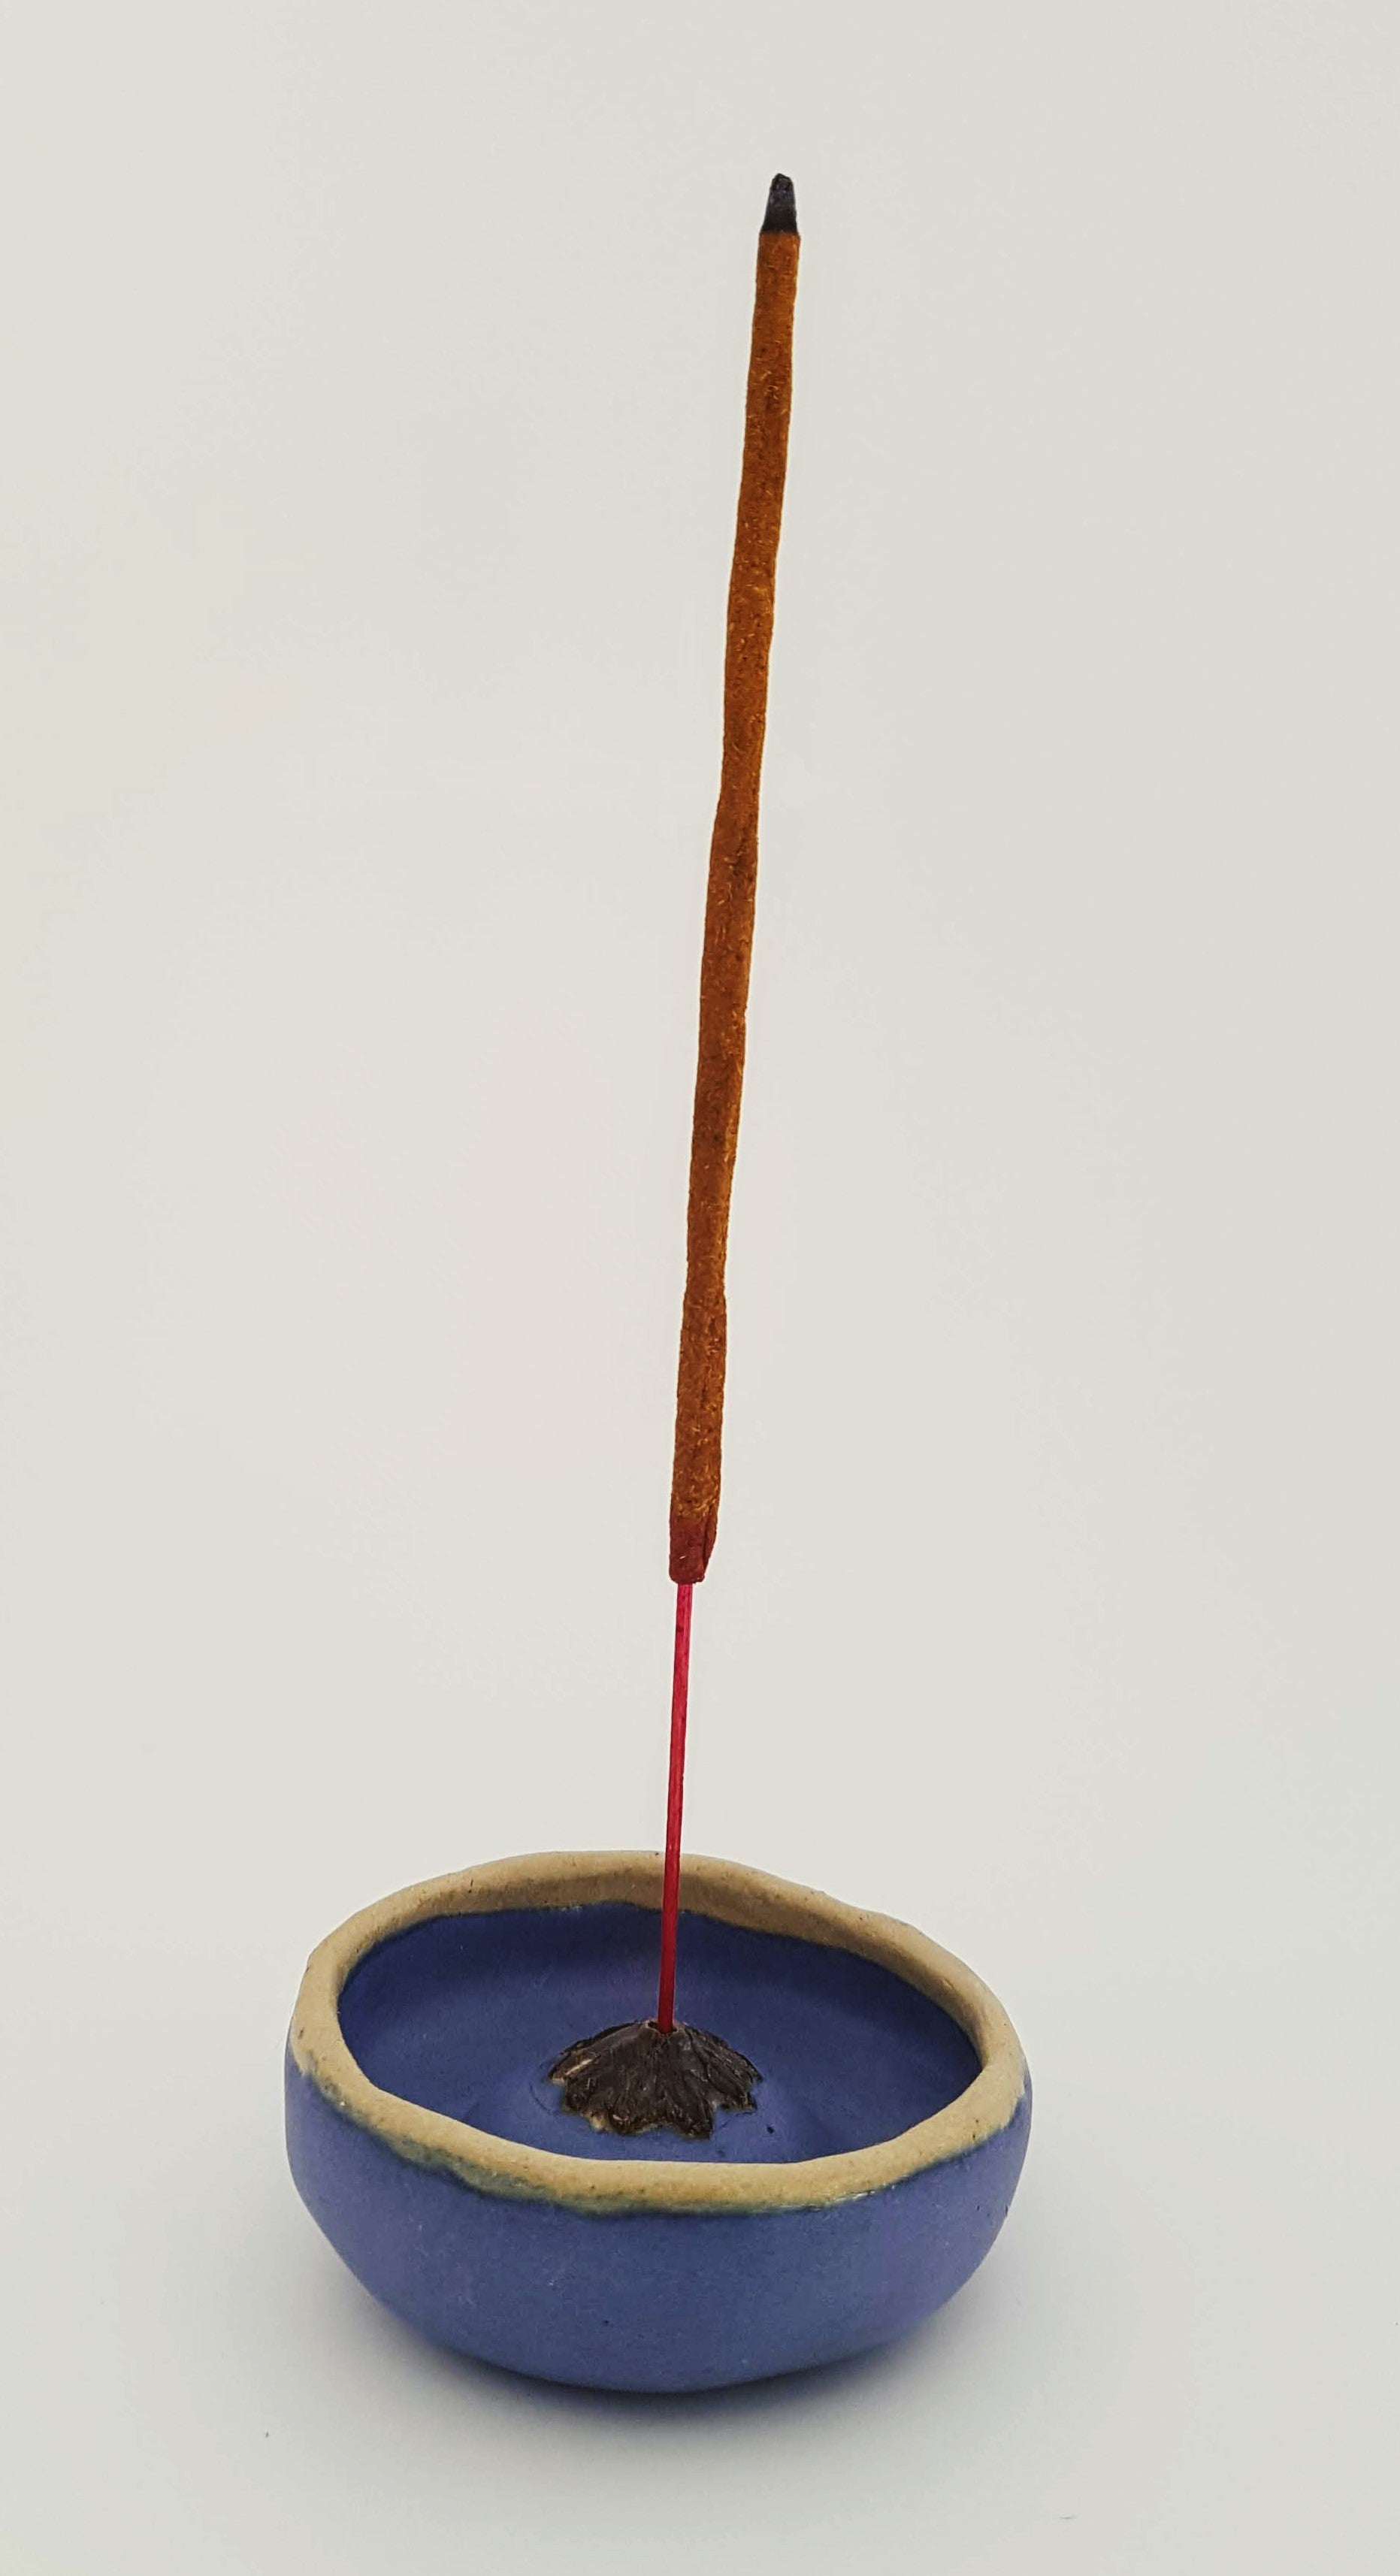 Poppy-pod Incense holder